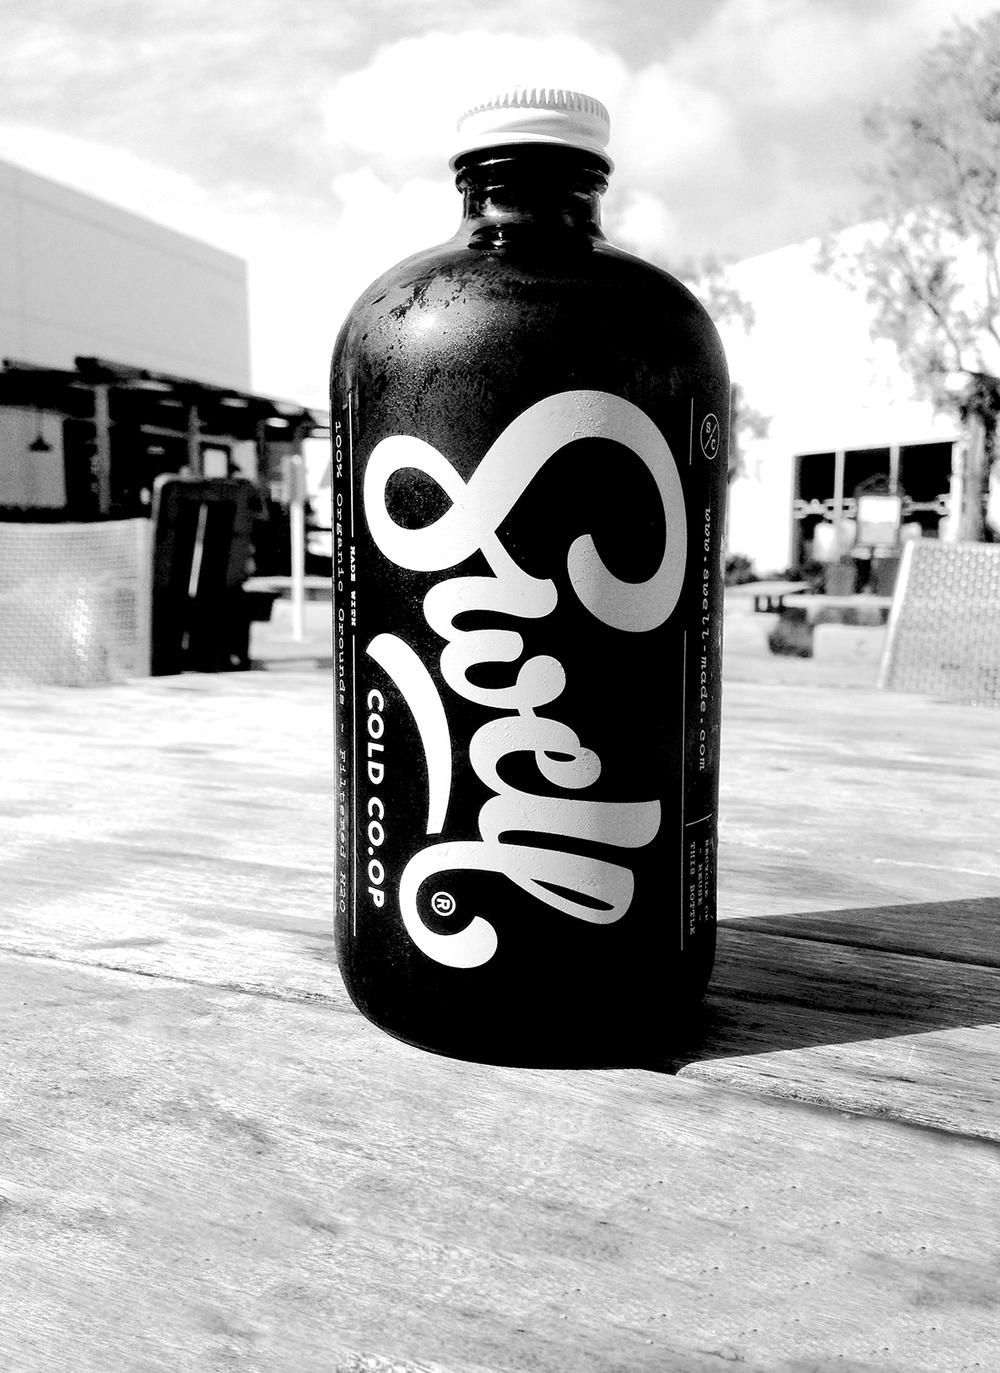 Swell_Bottle_BW.jpg